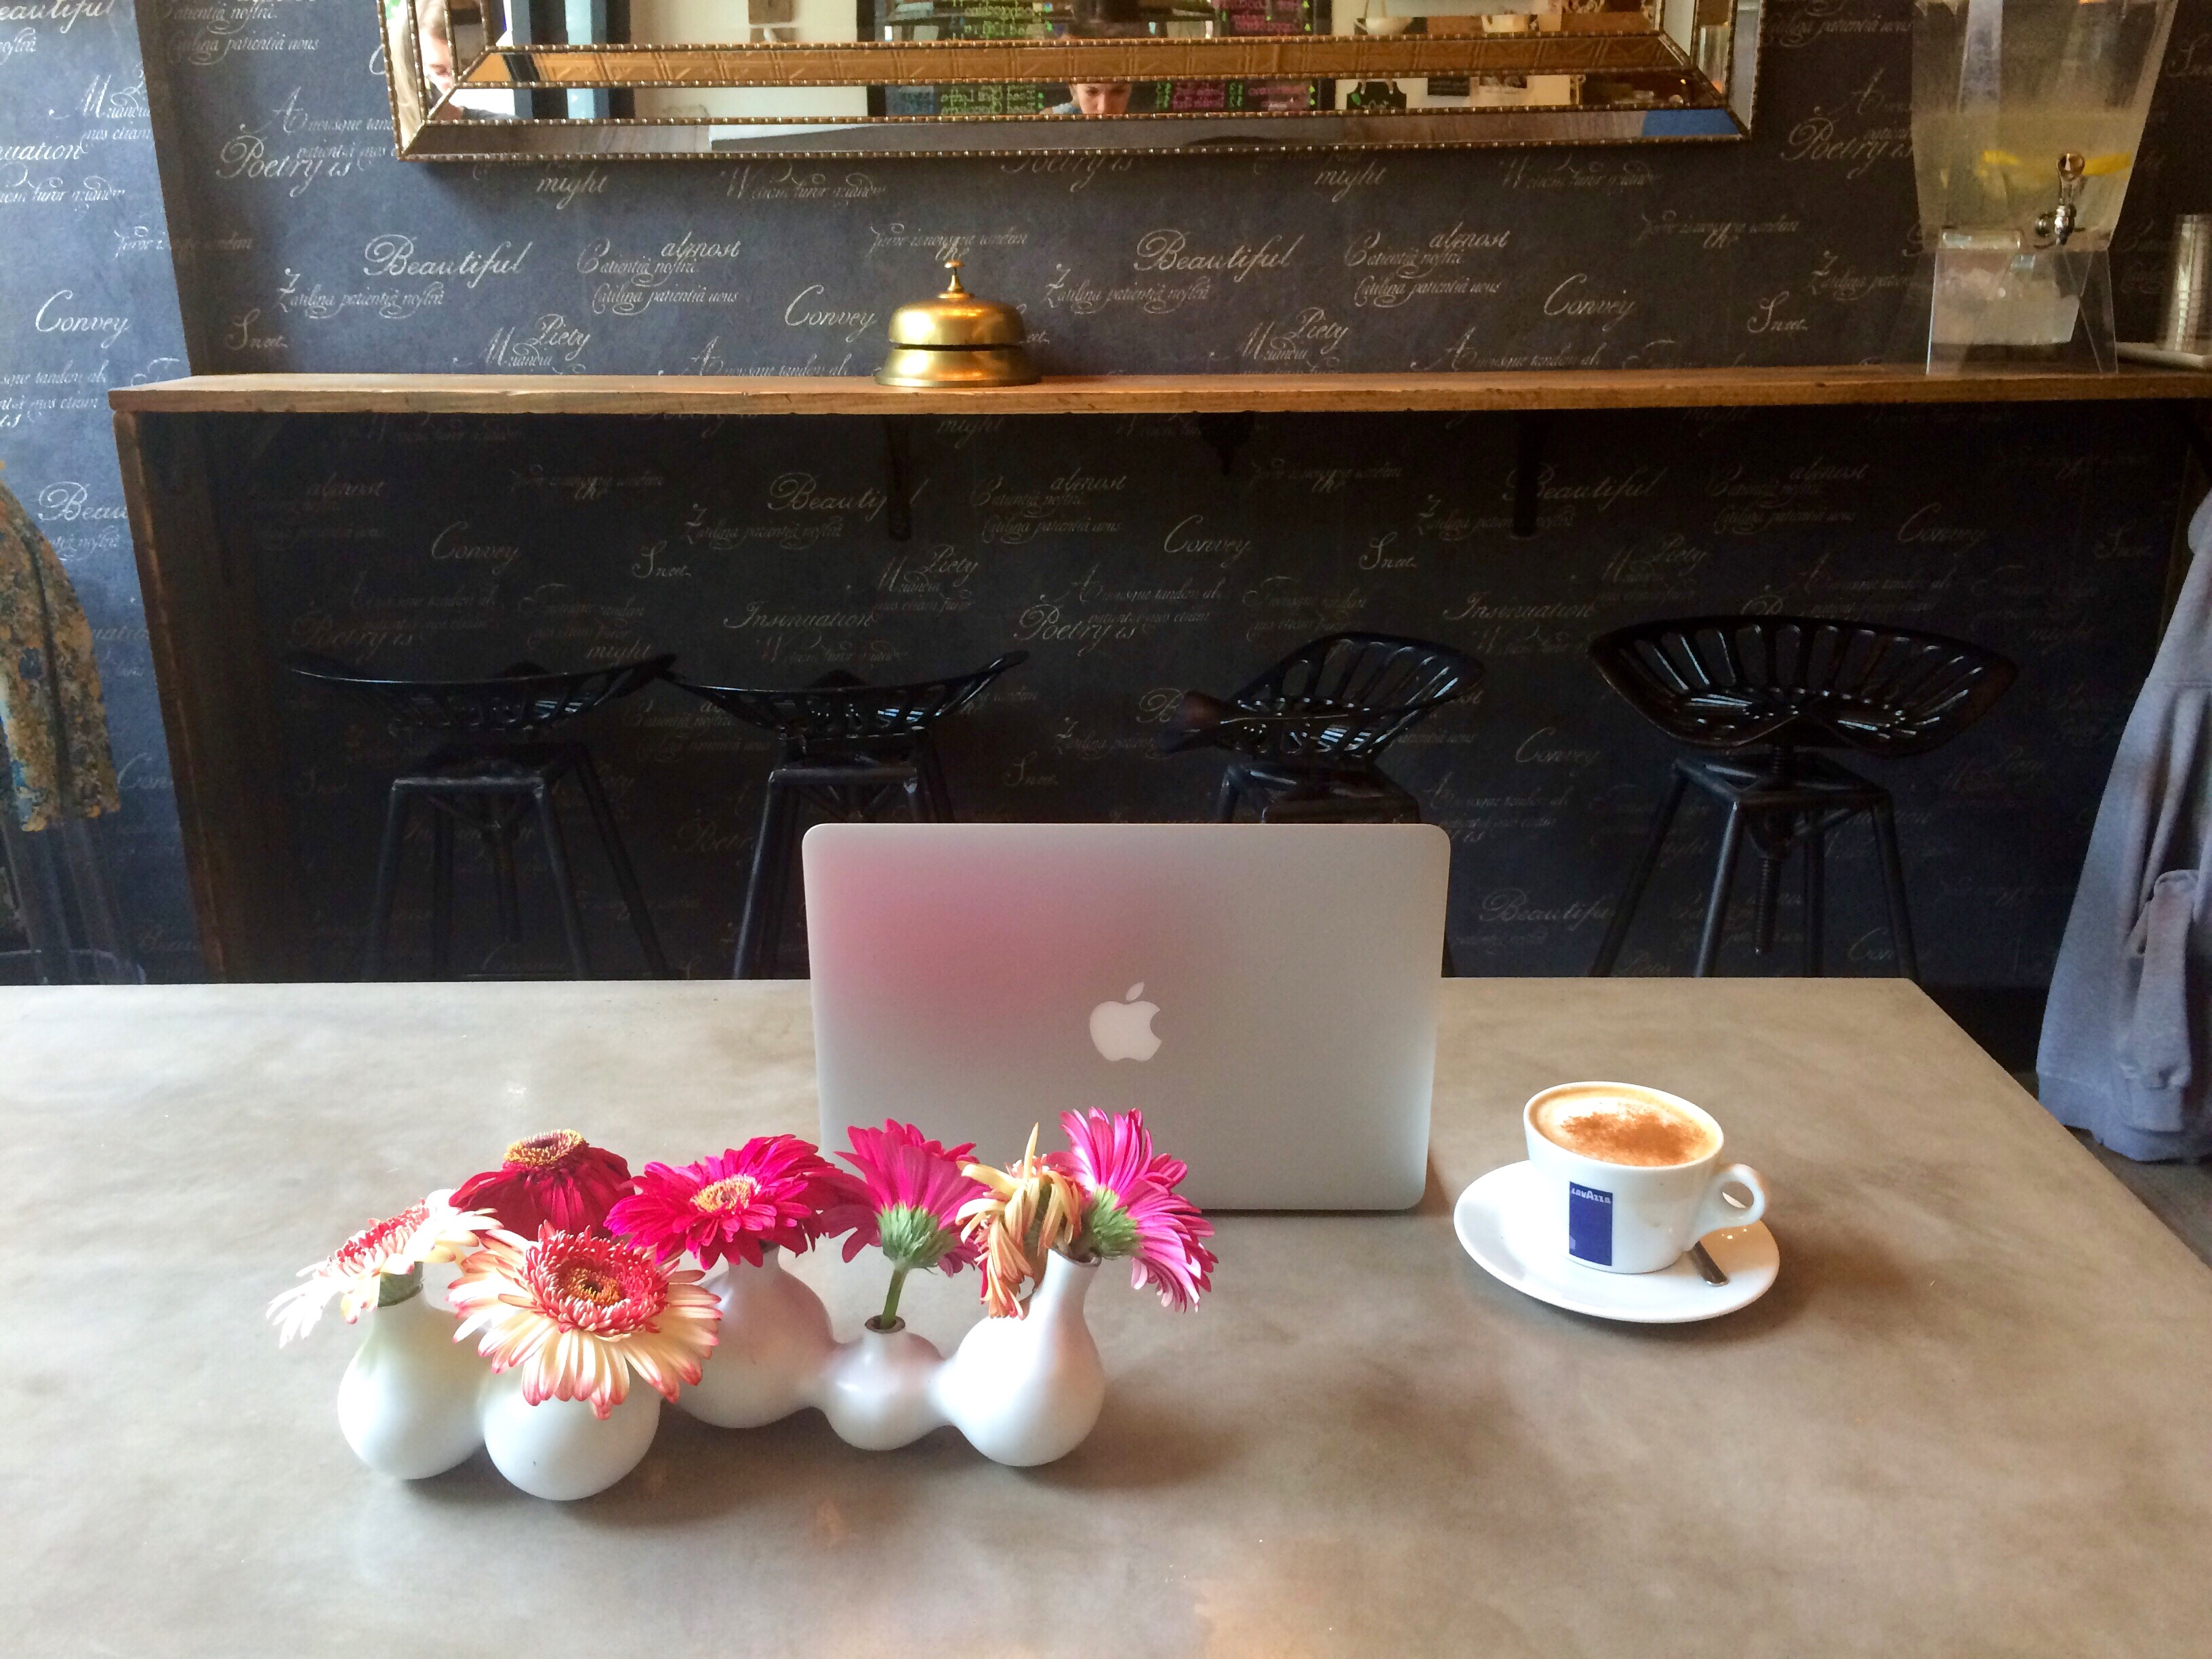 The Ultimate Guide to New York's Best Coffee Shops